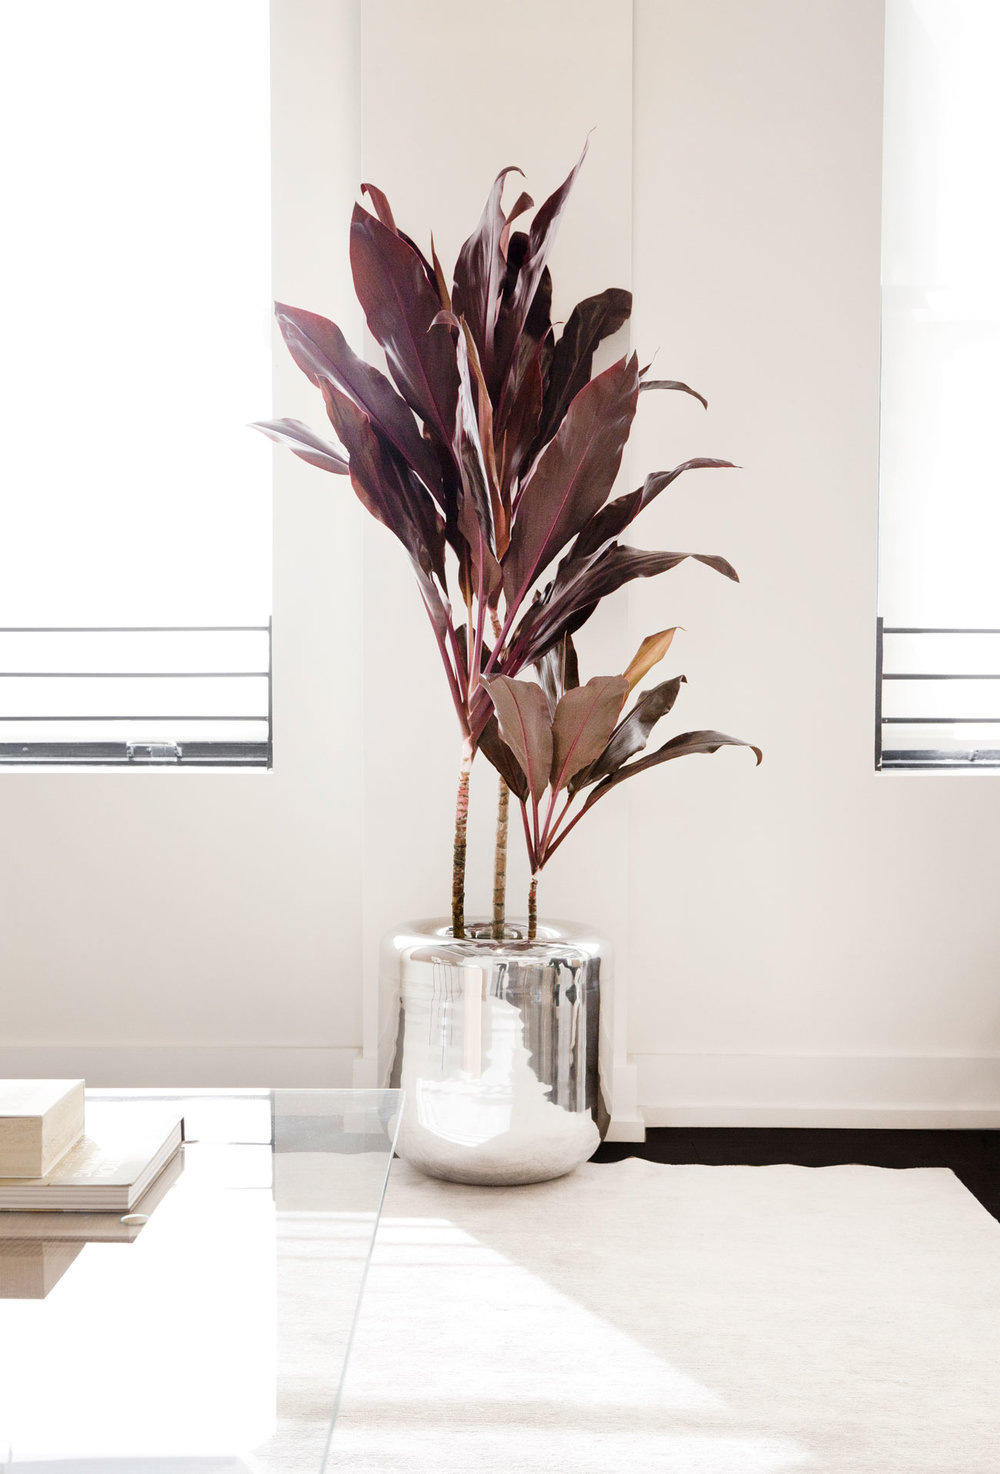 High-polished  Rounded Metal Planters  by Early Work can be found throughout the space.  More info